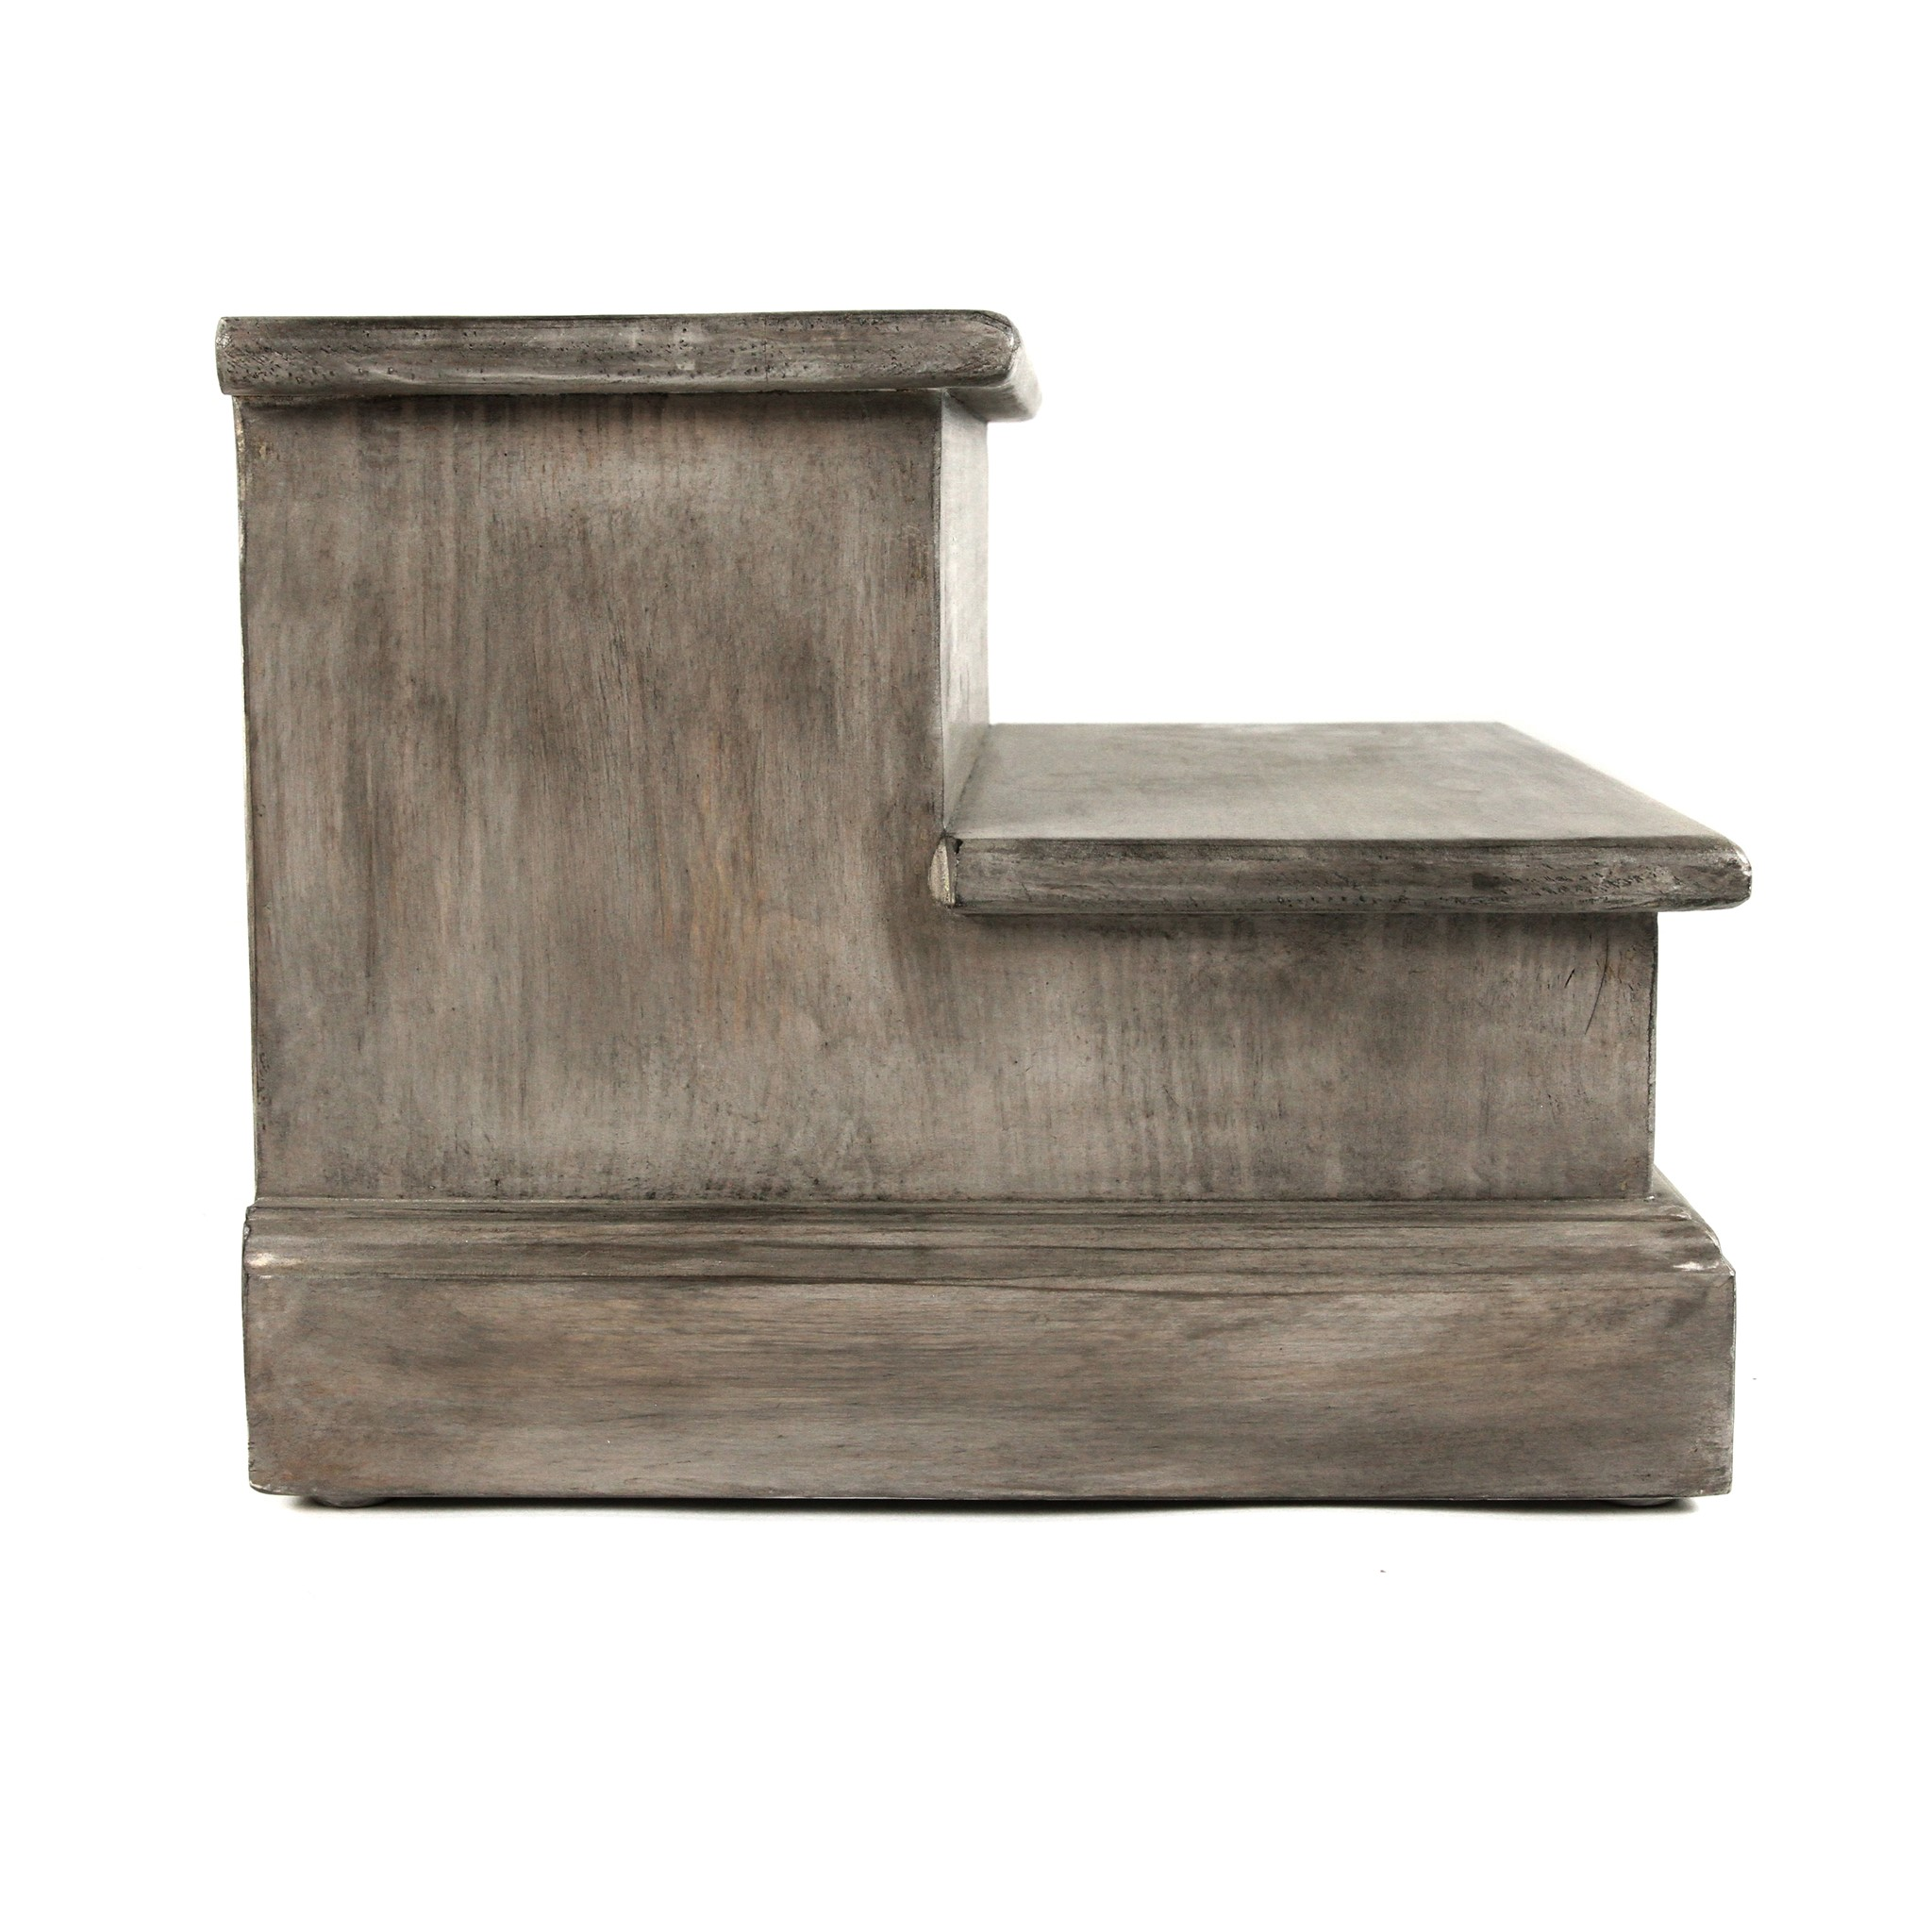 Step for Bed Stone Wash Dark